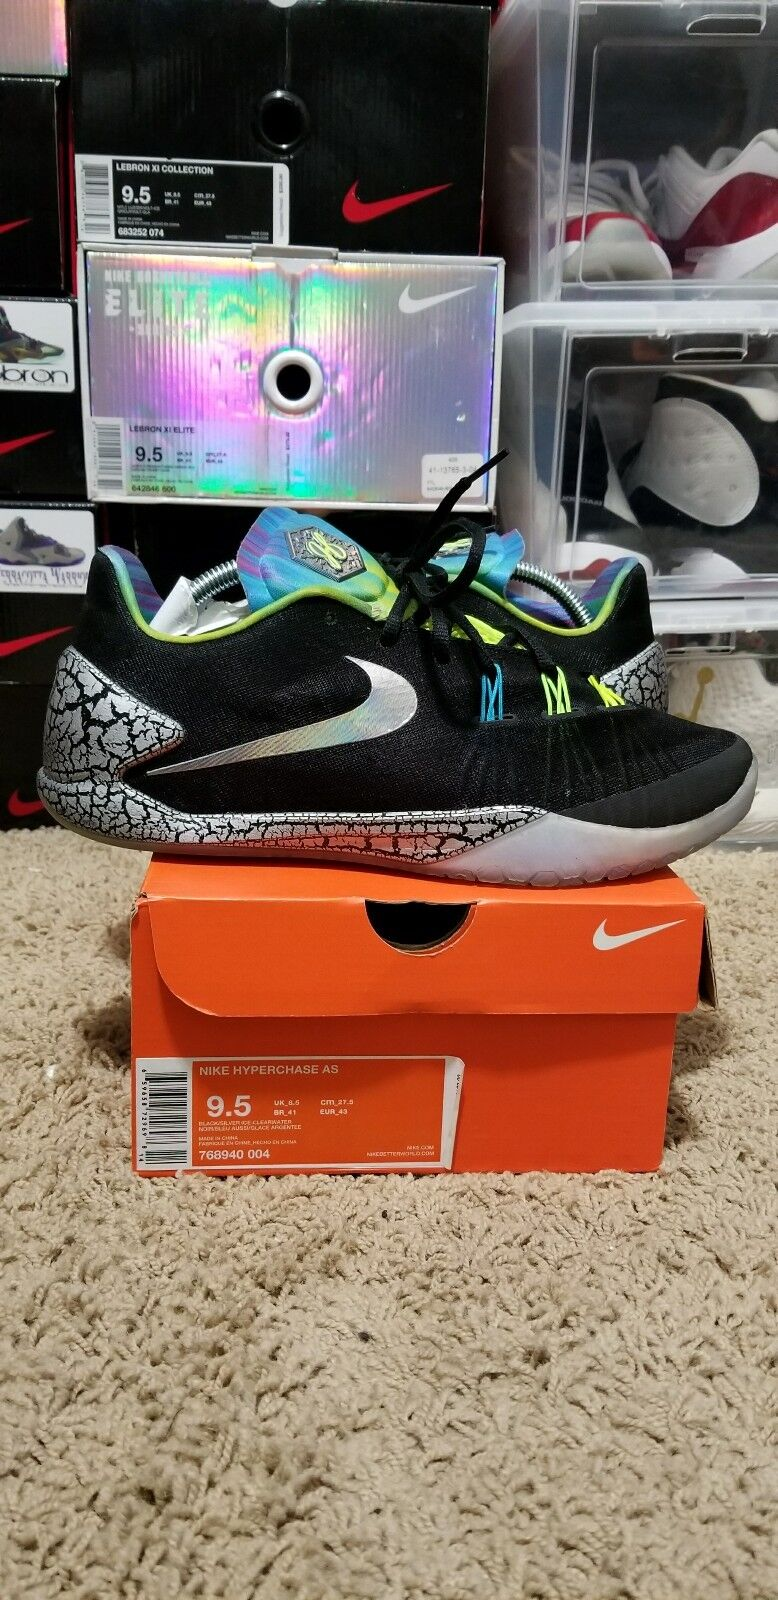 Nike Hyperchase AS All Star Star All Galaxy James Harden SIZE 9.5 LeBron Jordan 12 8 11 1 ff29aa